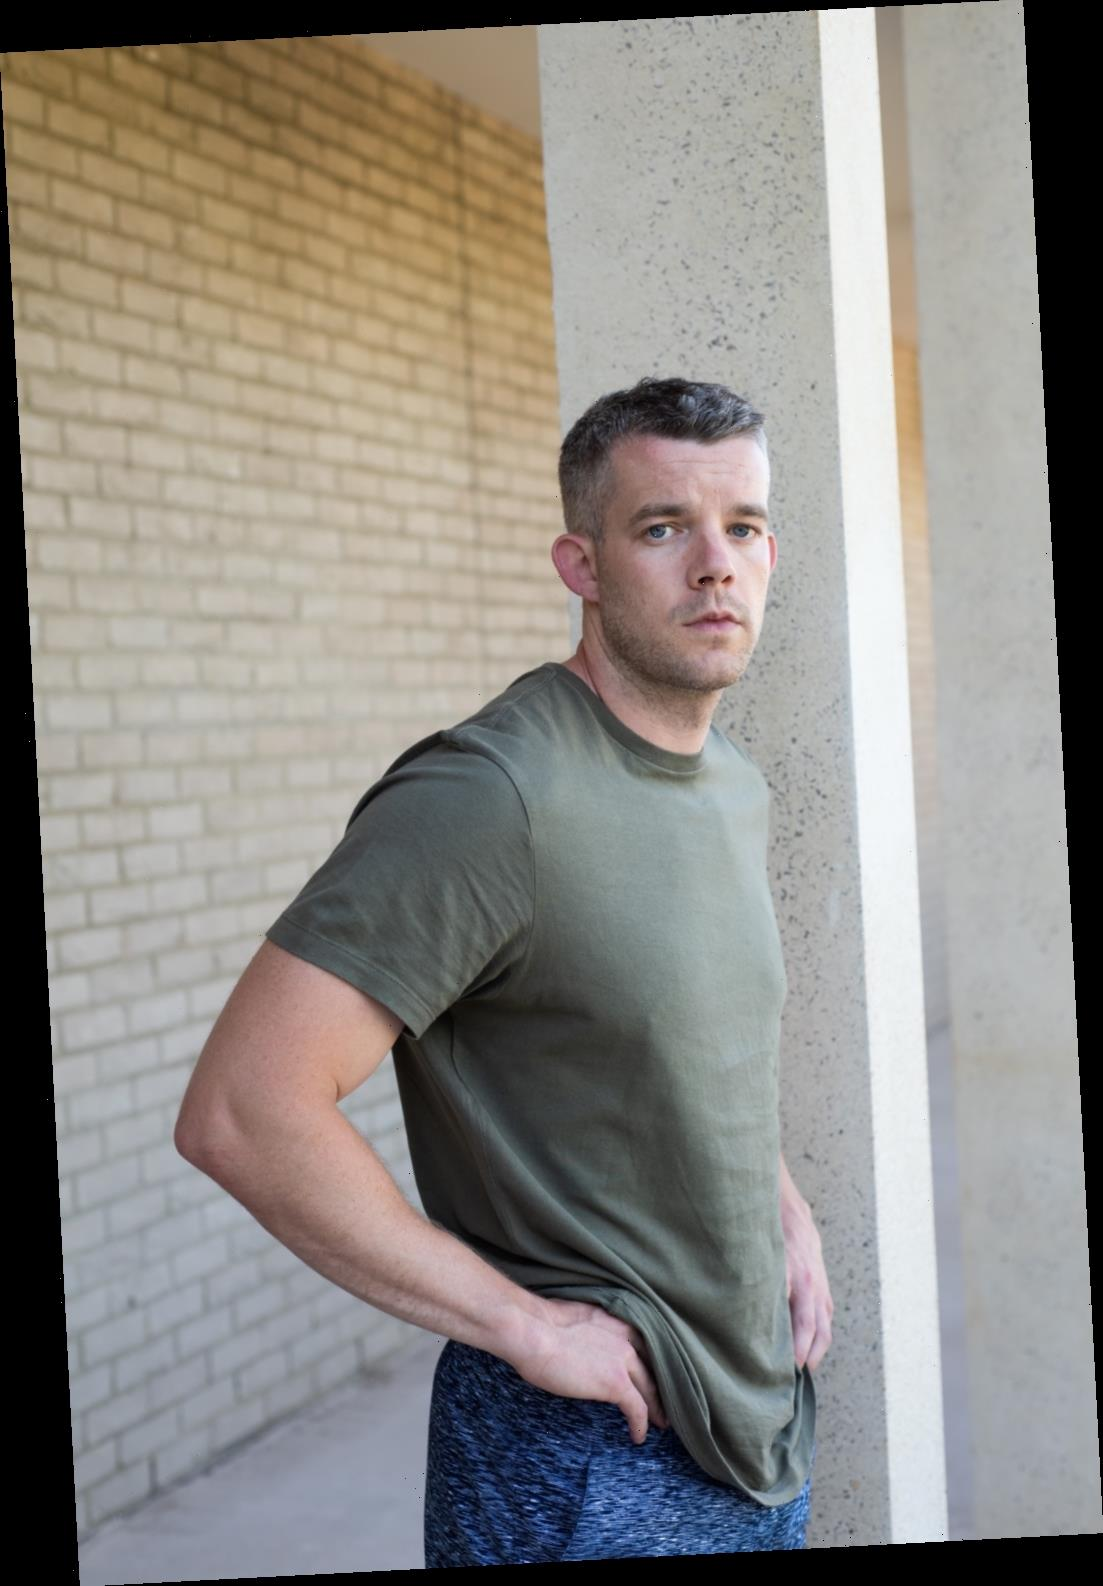 'Years & Years' Russell Tovey To Star In ITV Drama 'Because The Night' From 'Luther' Creator Neil Cross